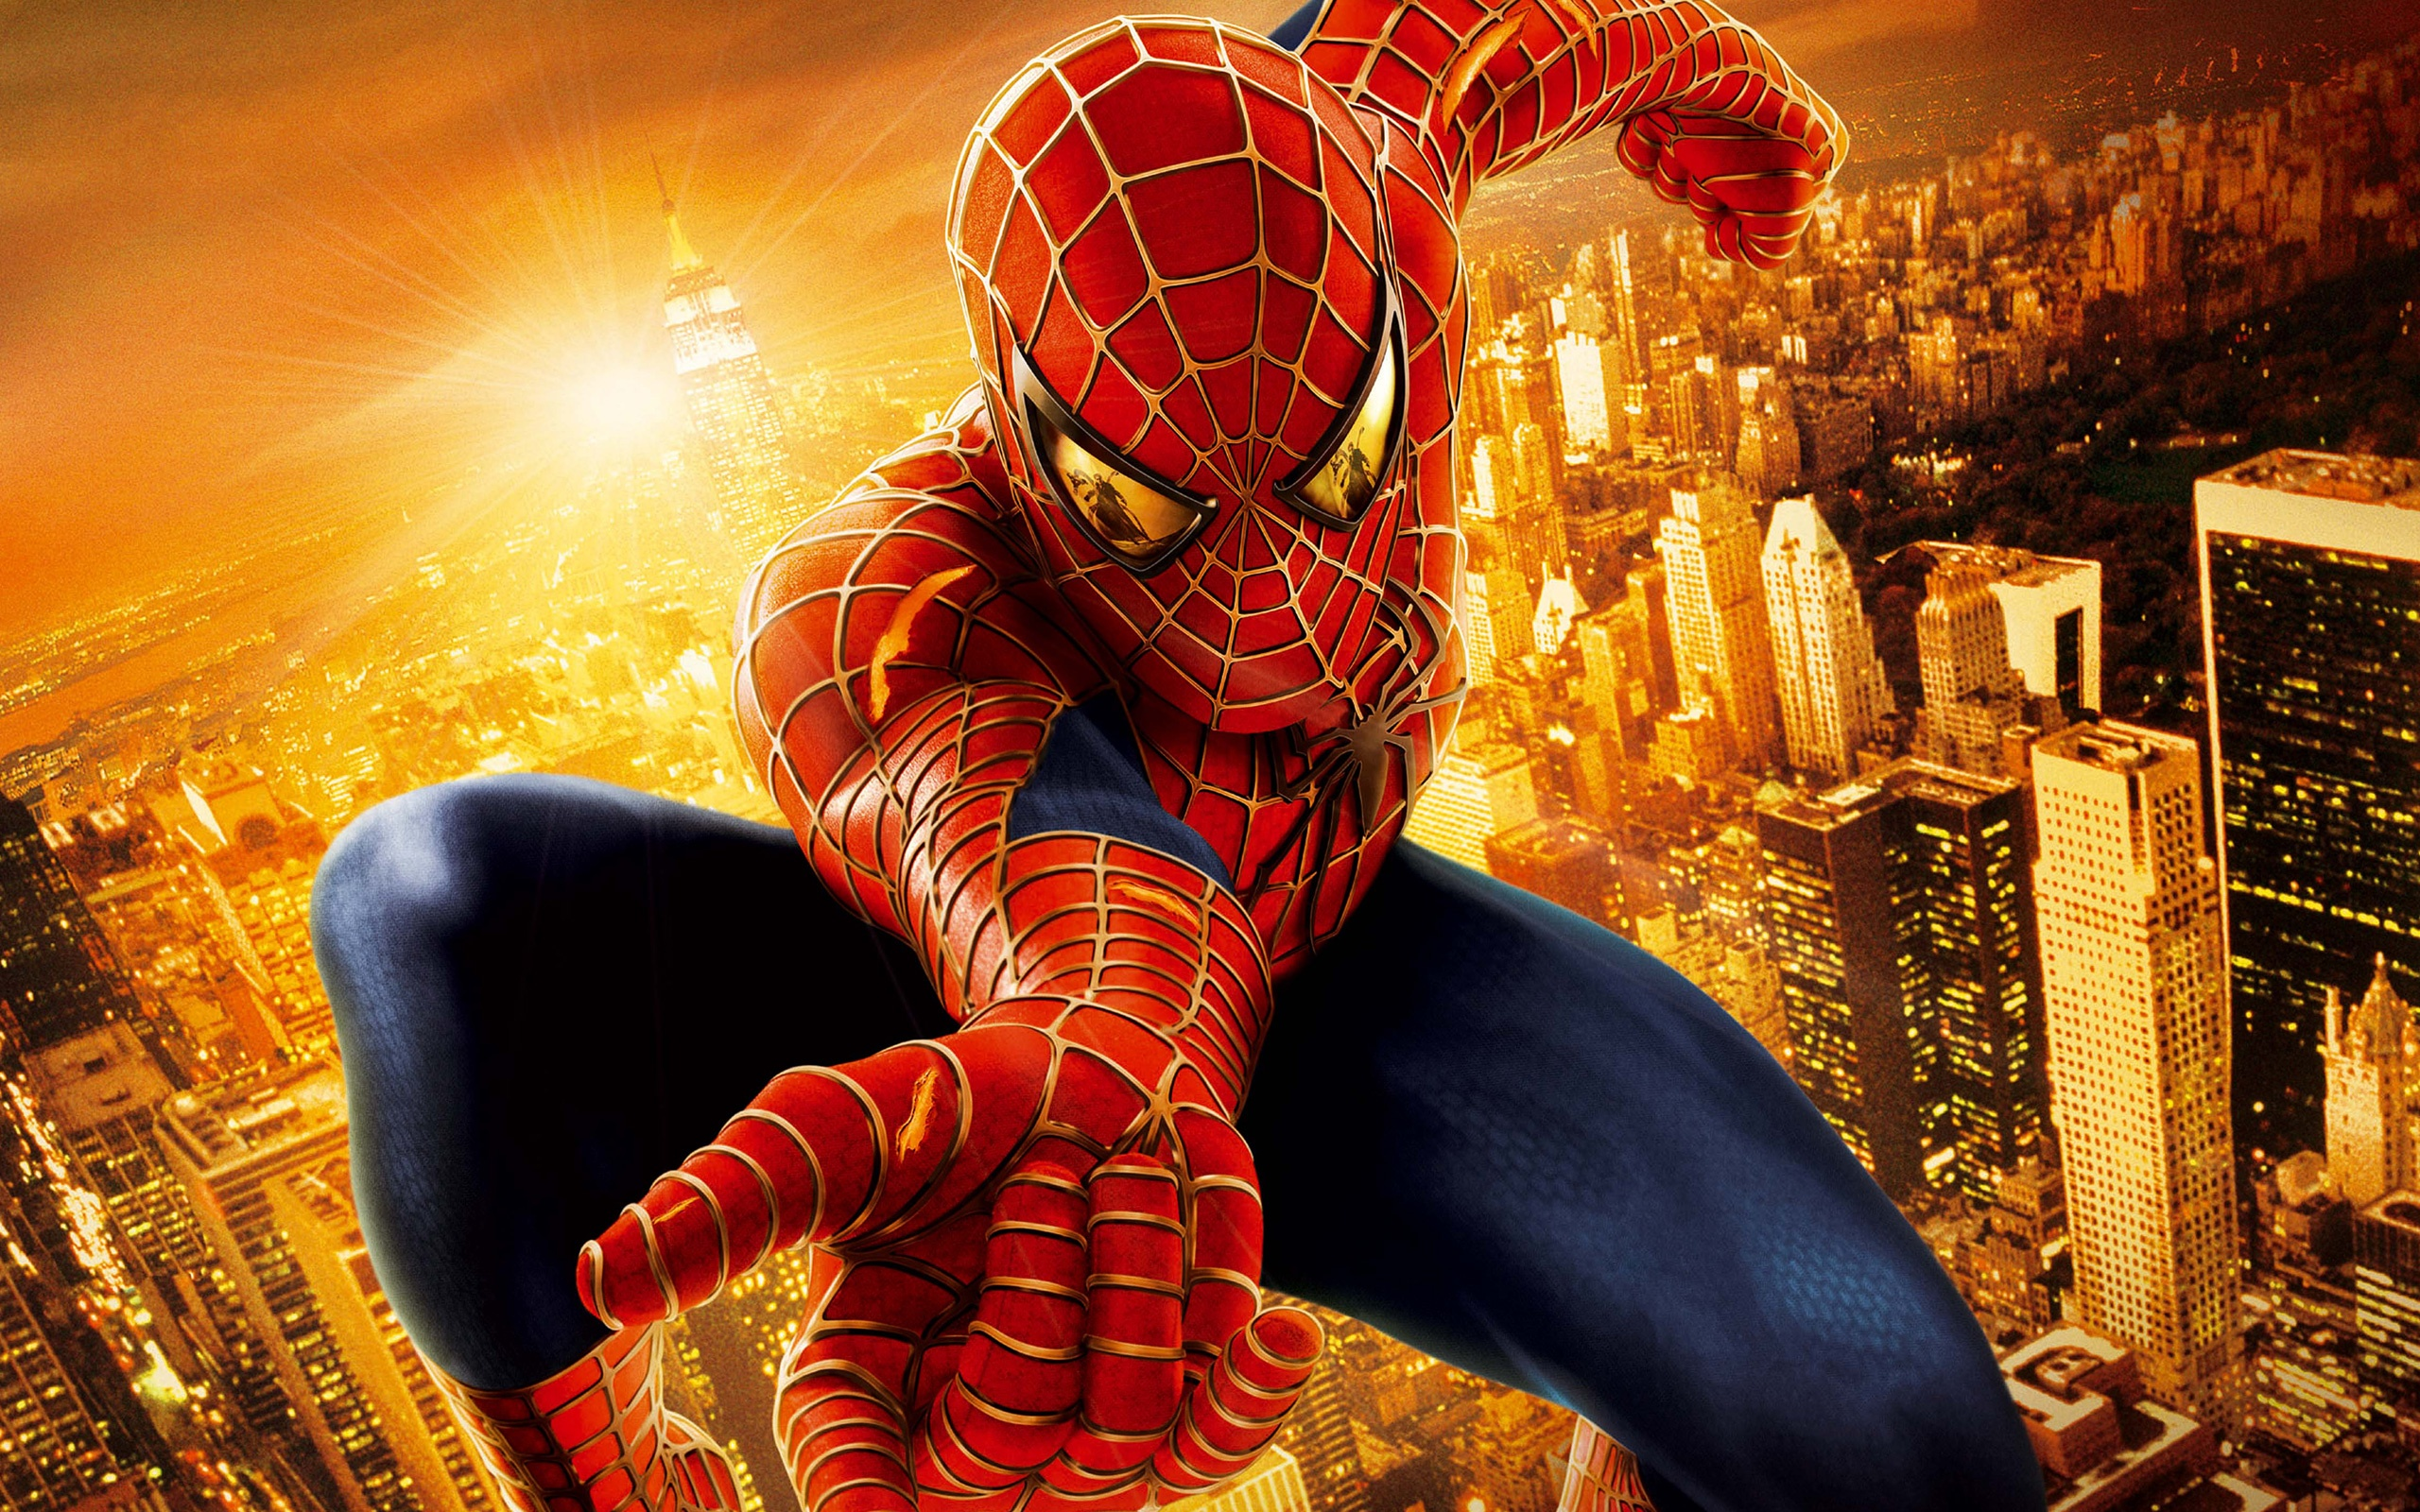 Background image css trackid sp 006 - Spiderman Background Etsy